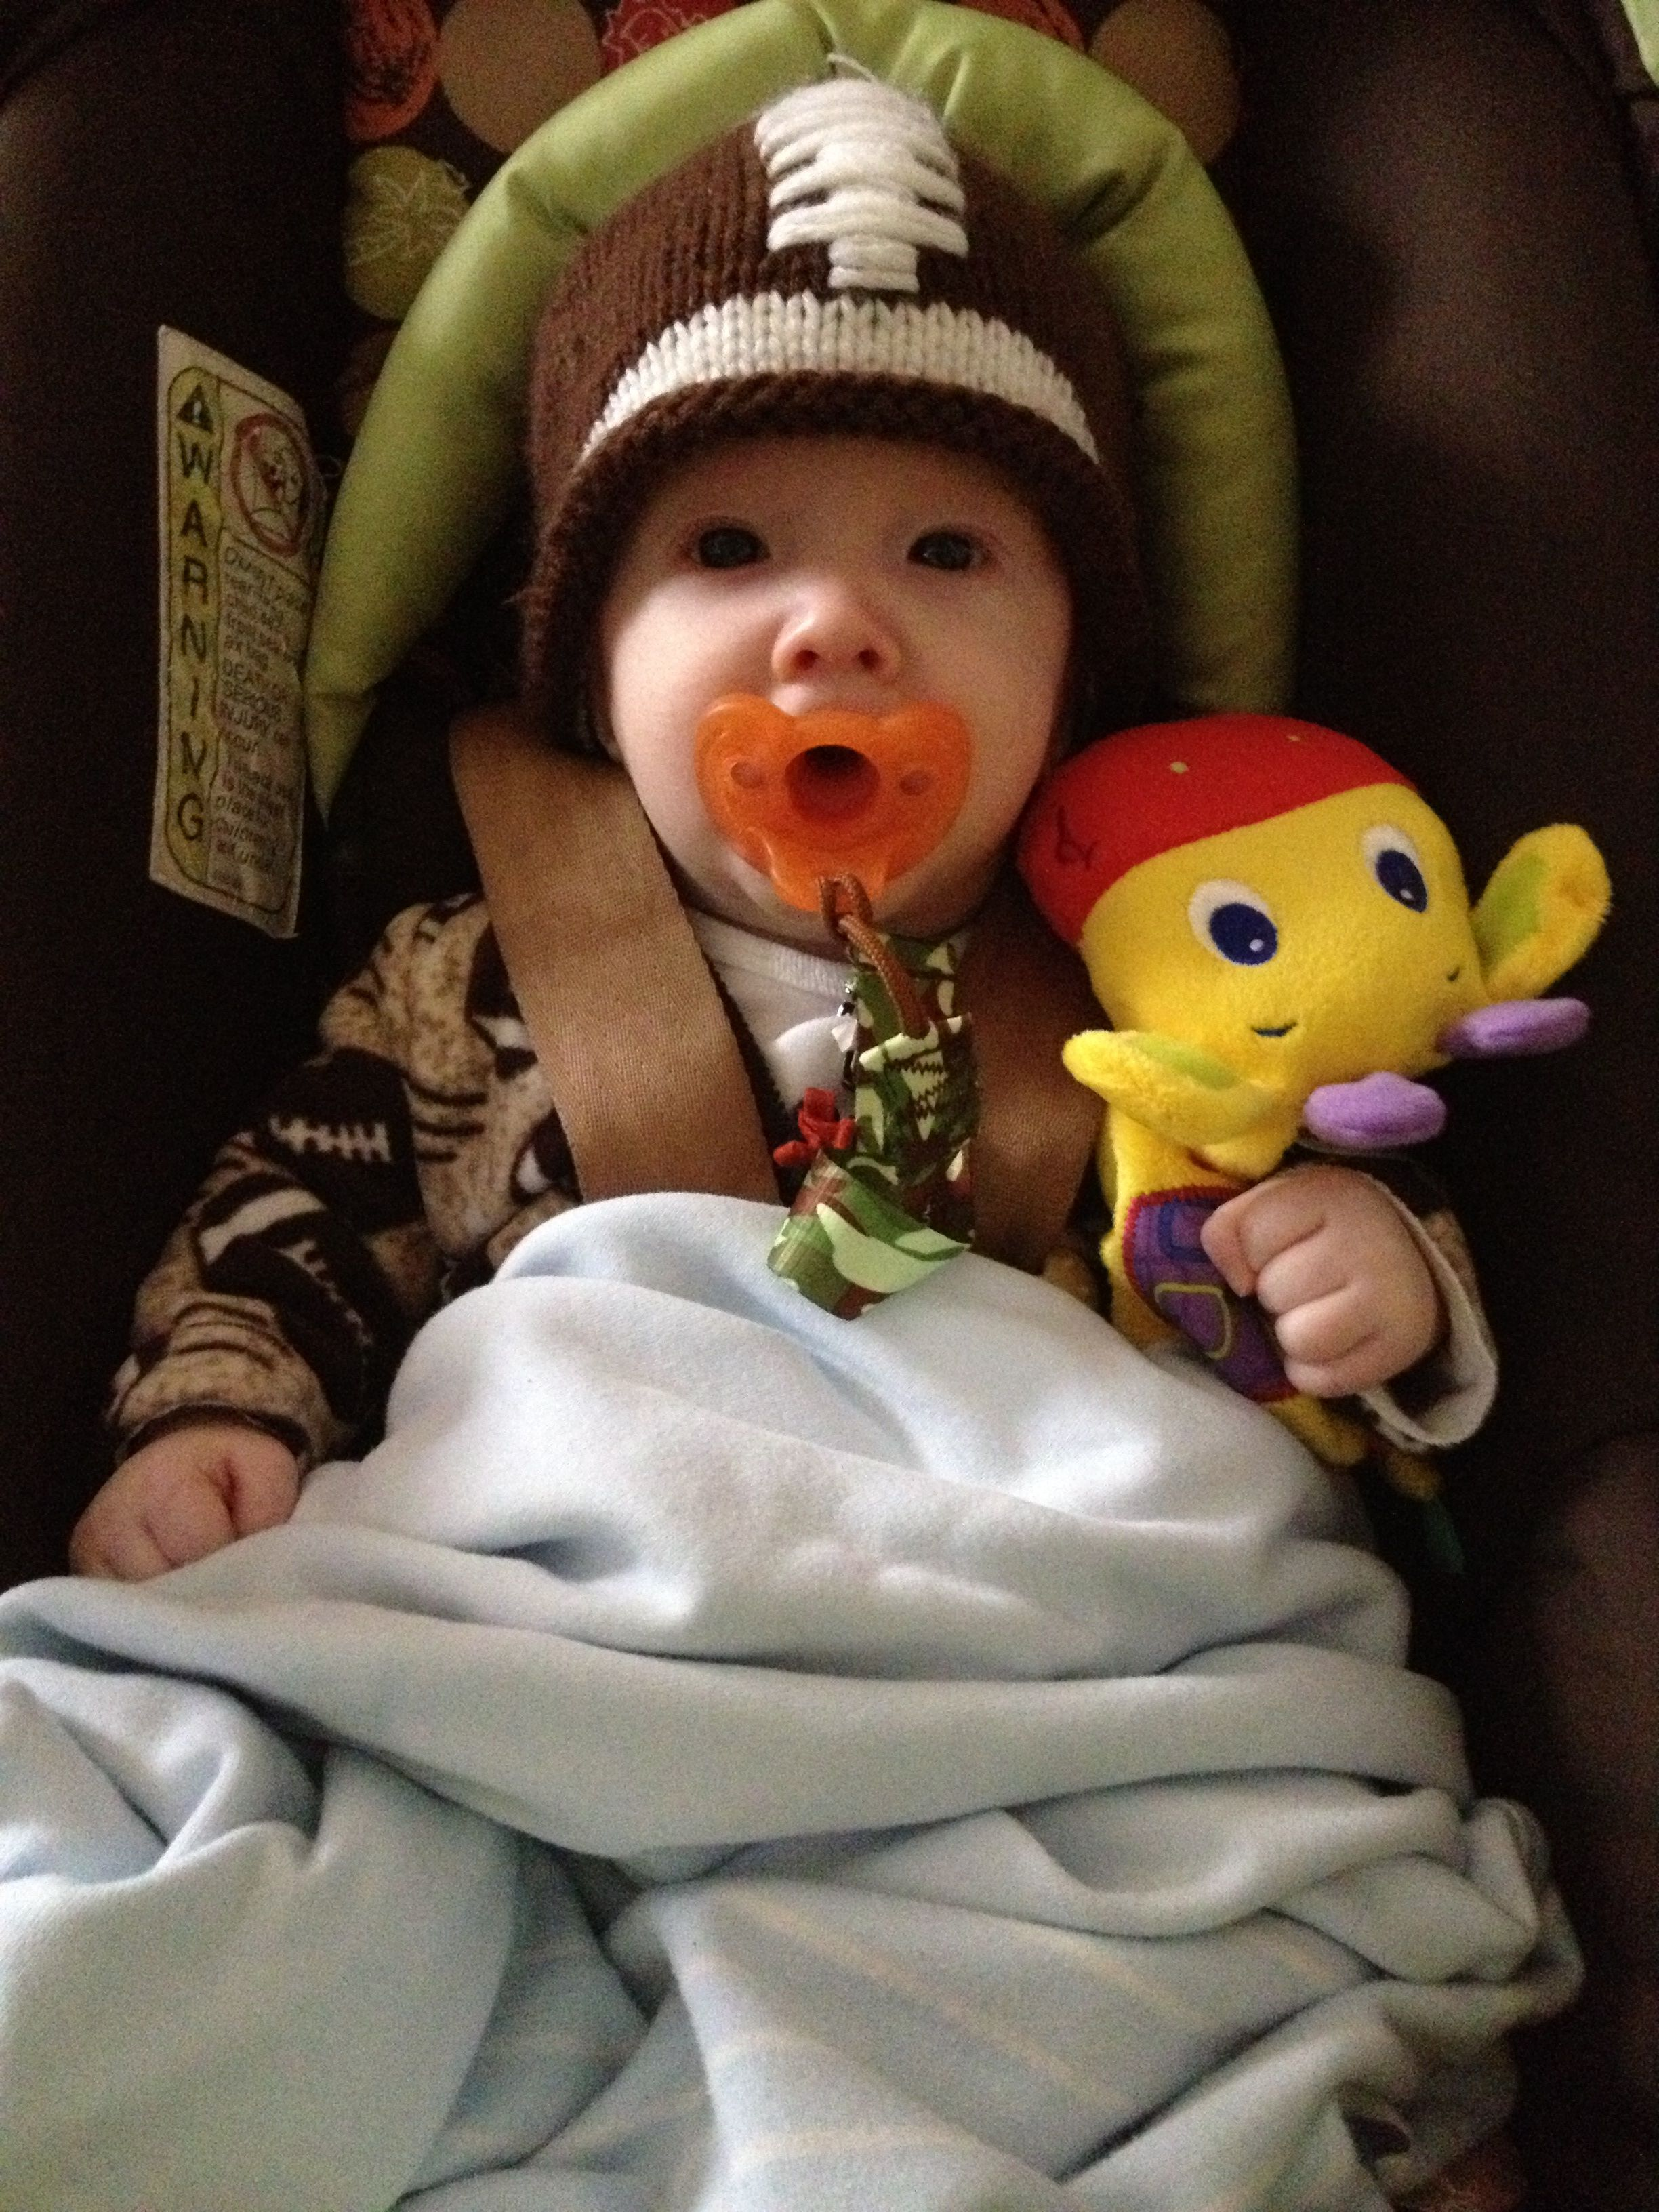 This Is A Blog About My Son Who Has Spina Bifida My Main Hope For